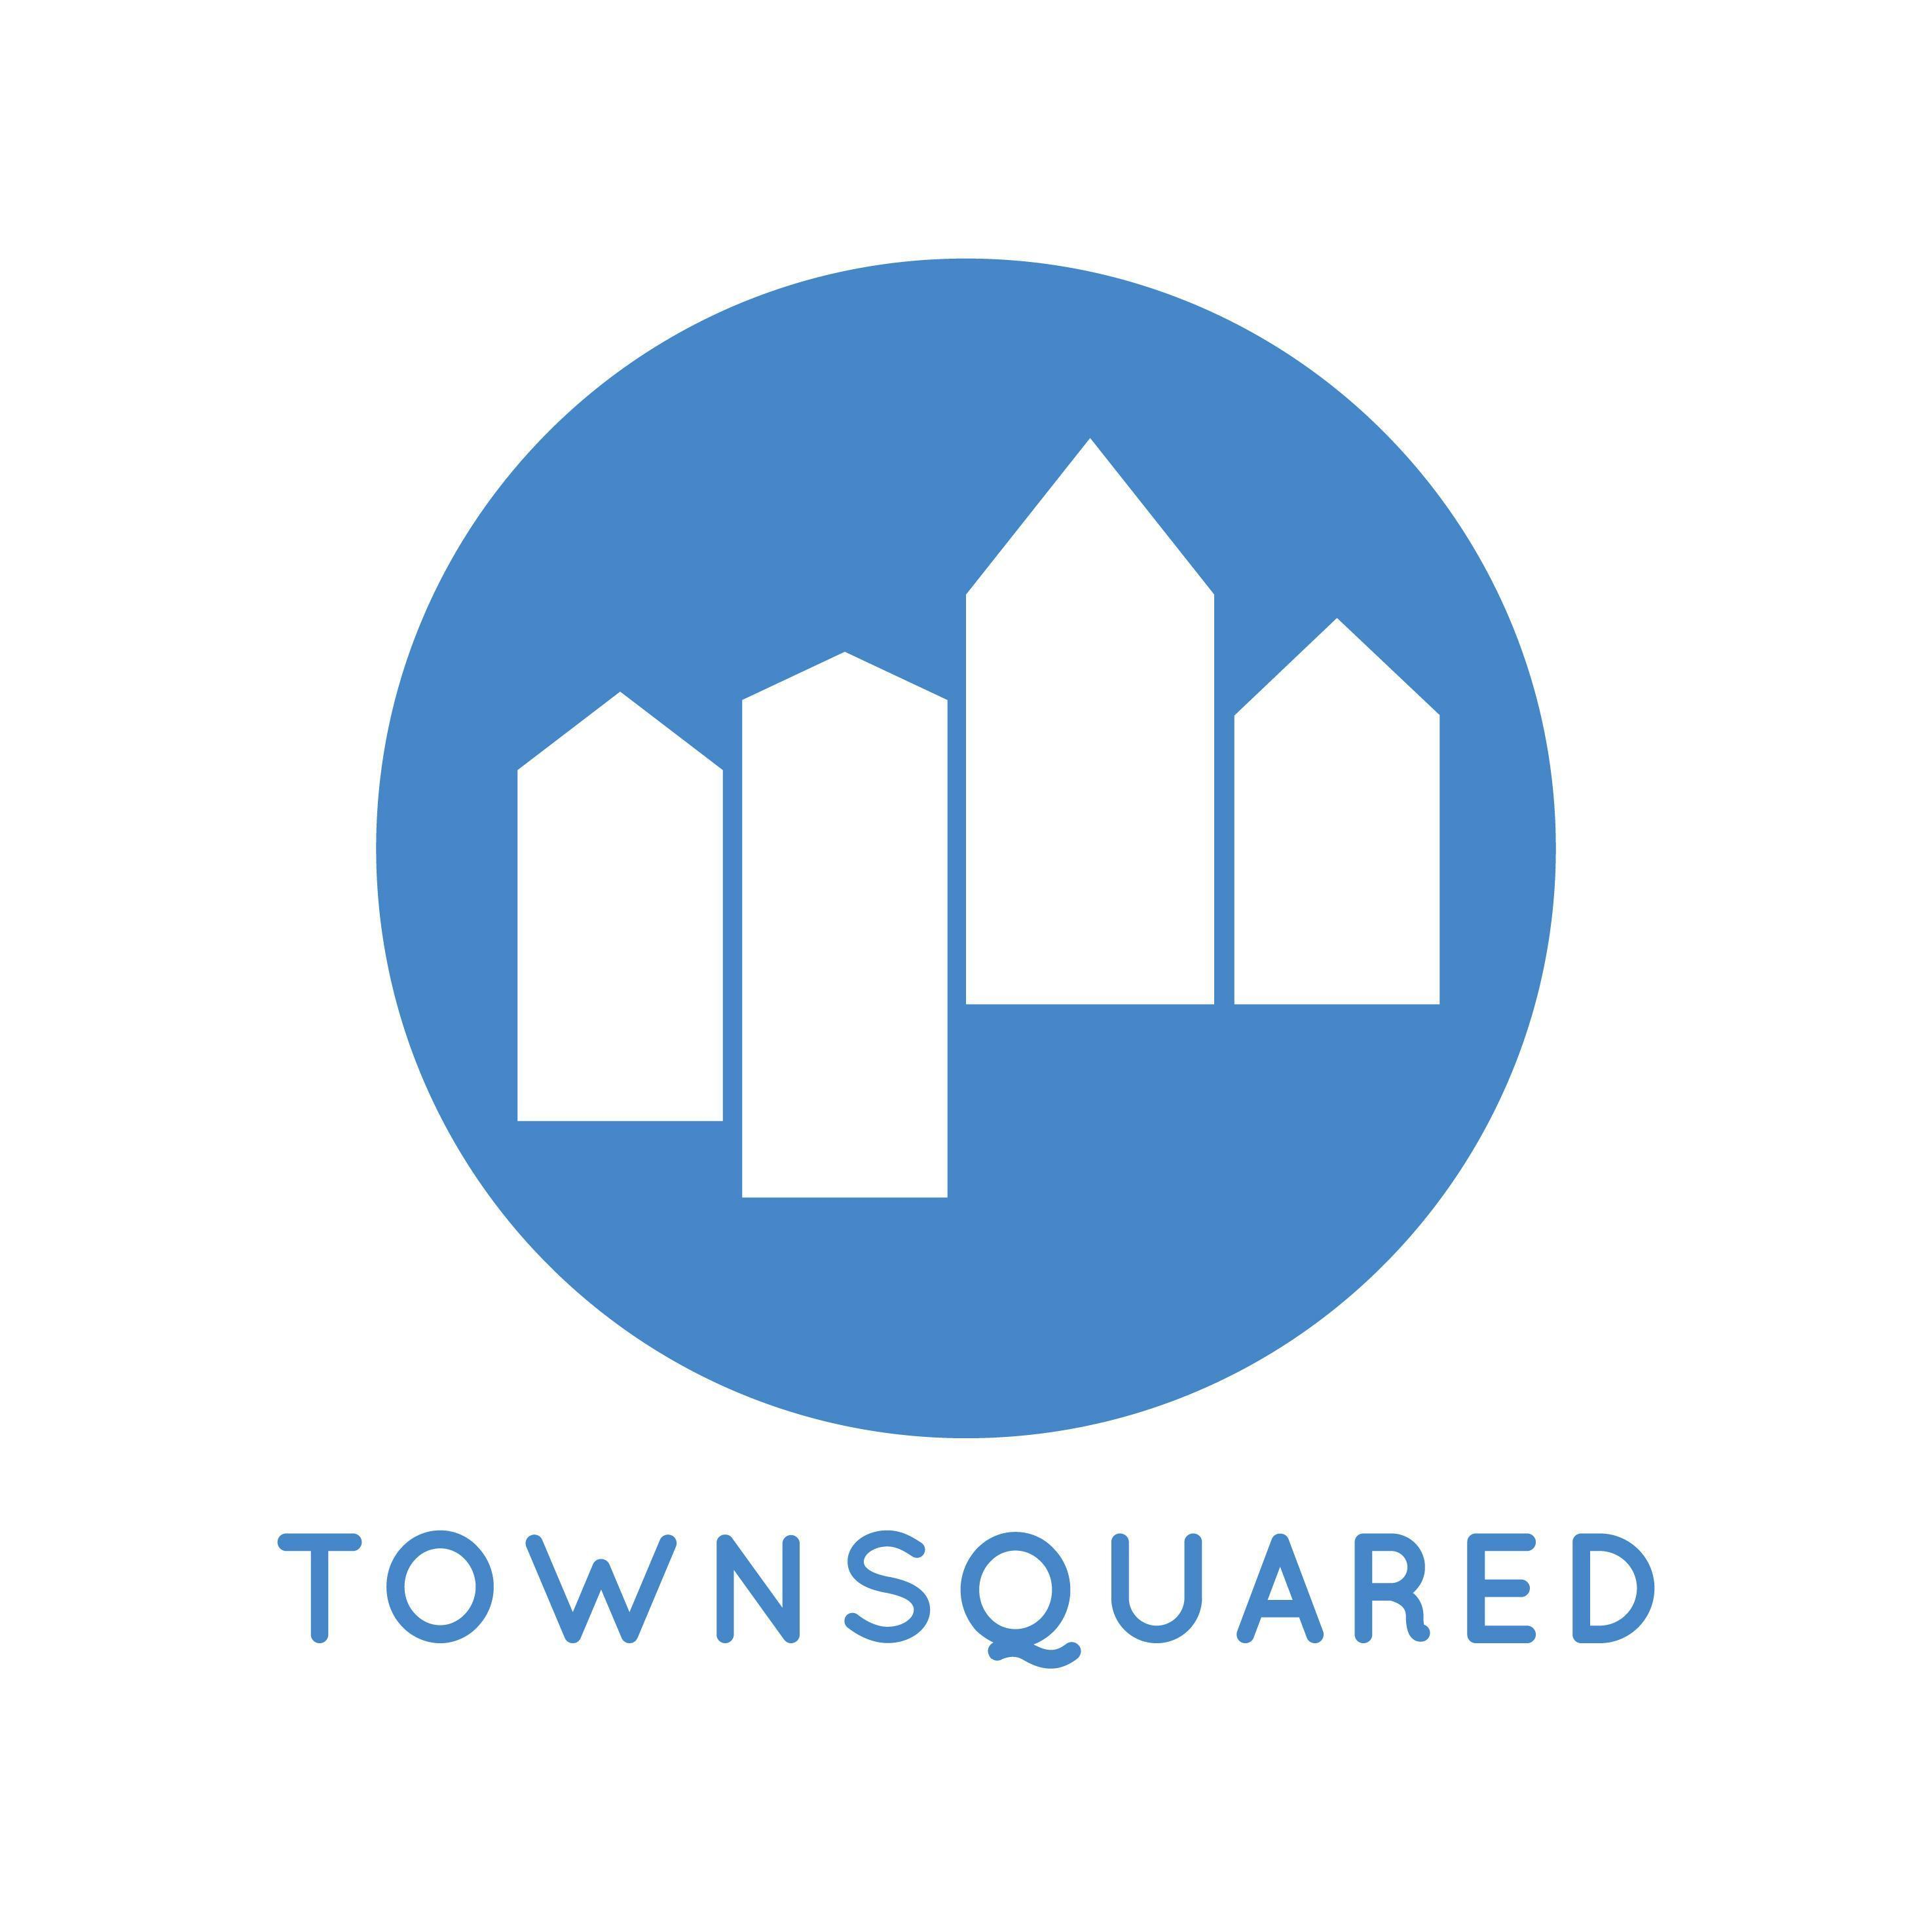 Townsquared